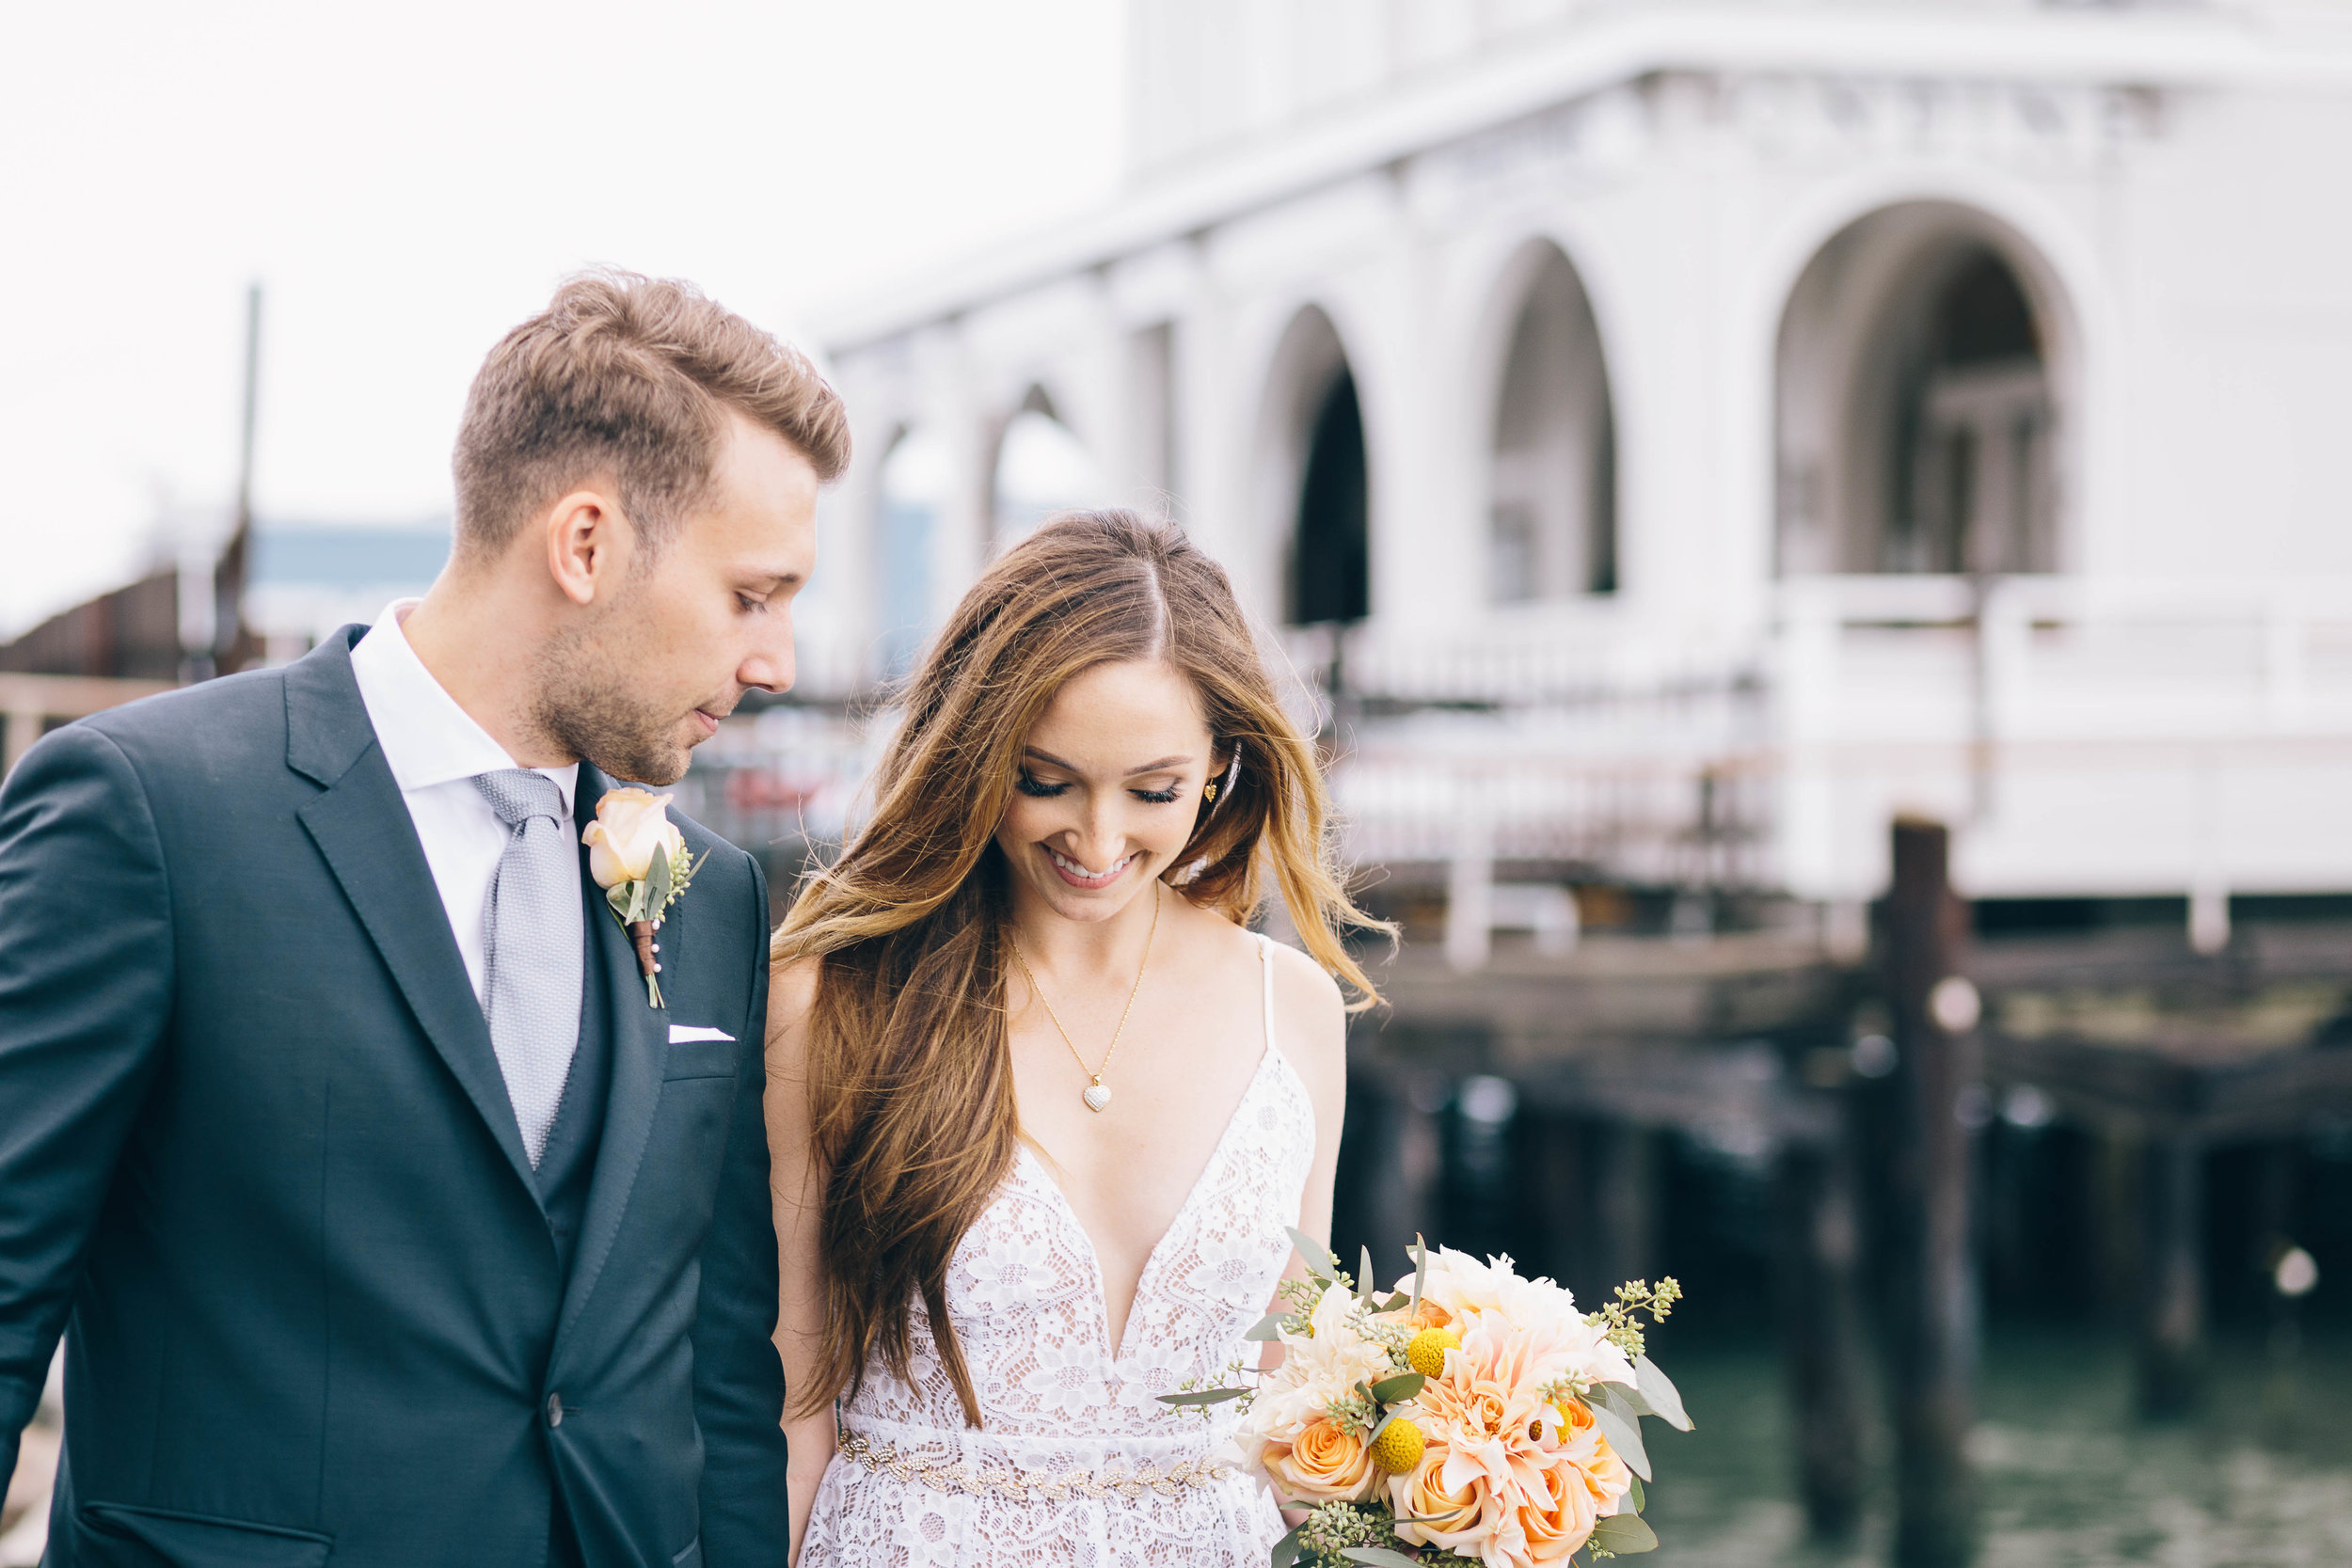 Sausalito Wedding at Ondine Events by JBJ Pictures - Photographer in Sausalito and Marin County - Engagment & Wedding Photography in San Francisco, Marin, Sonoma, and Napa (50).jpg